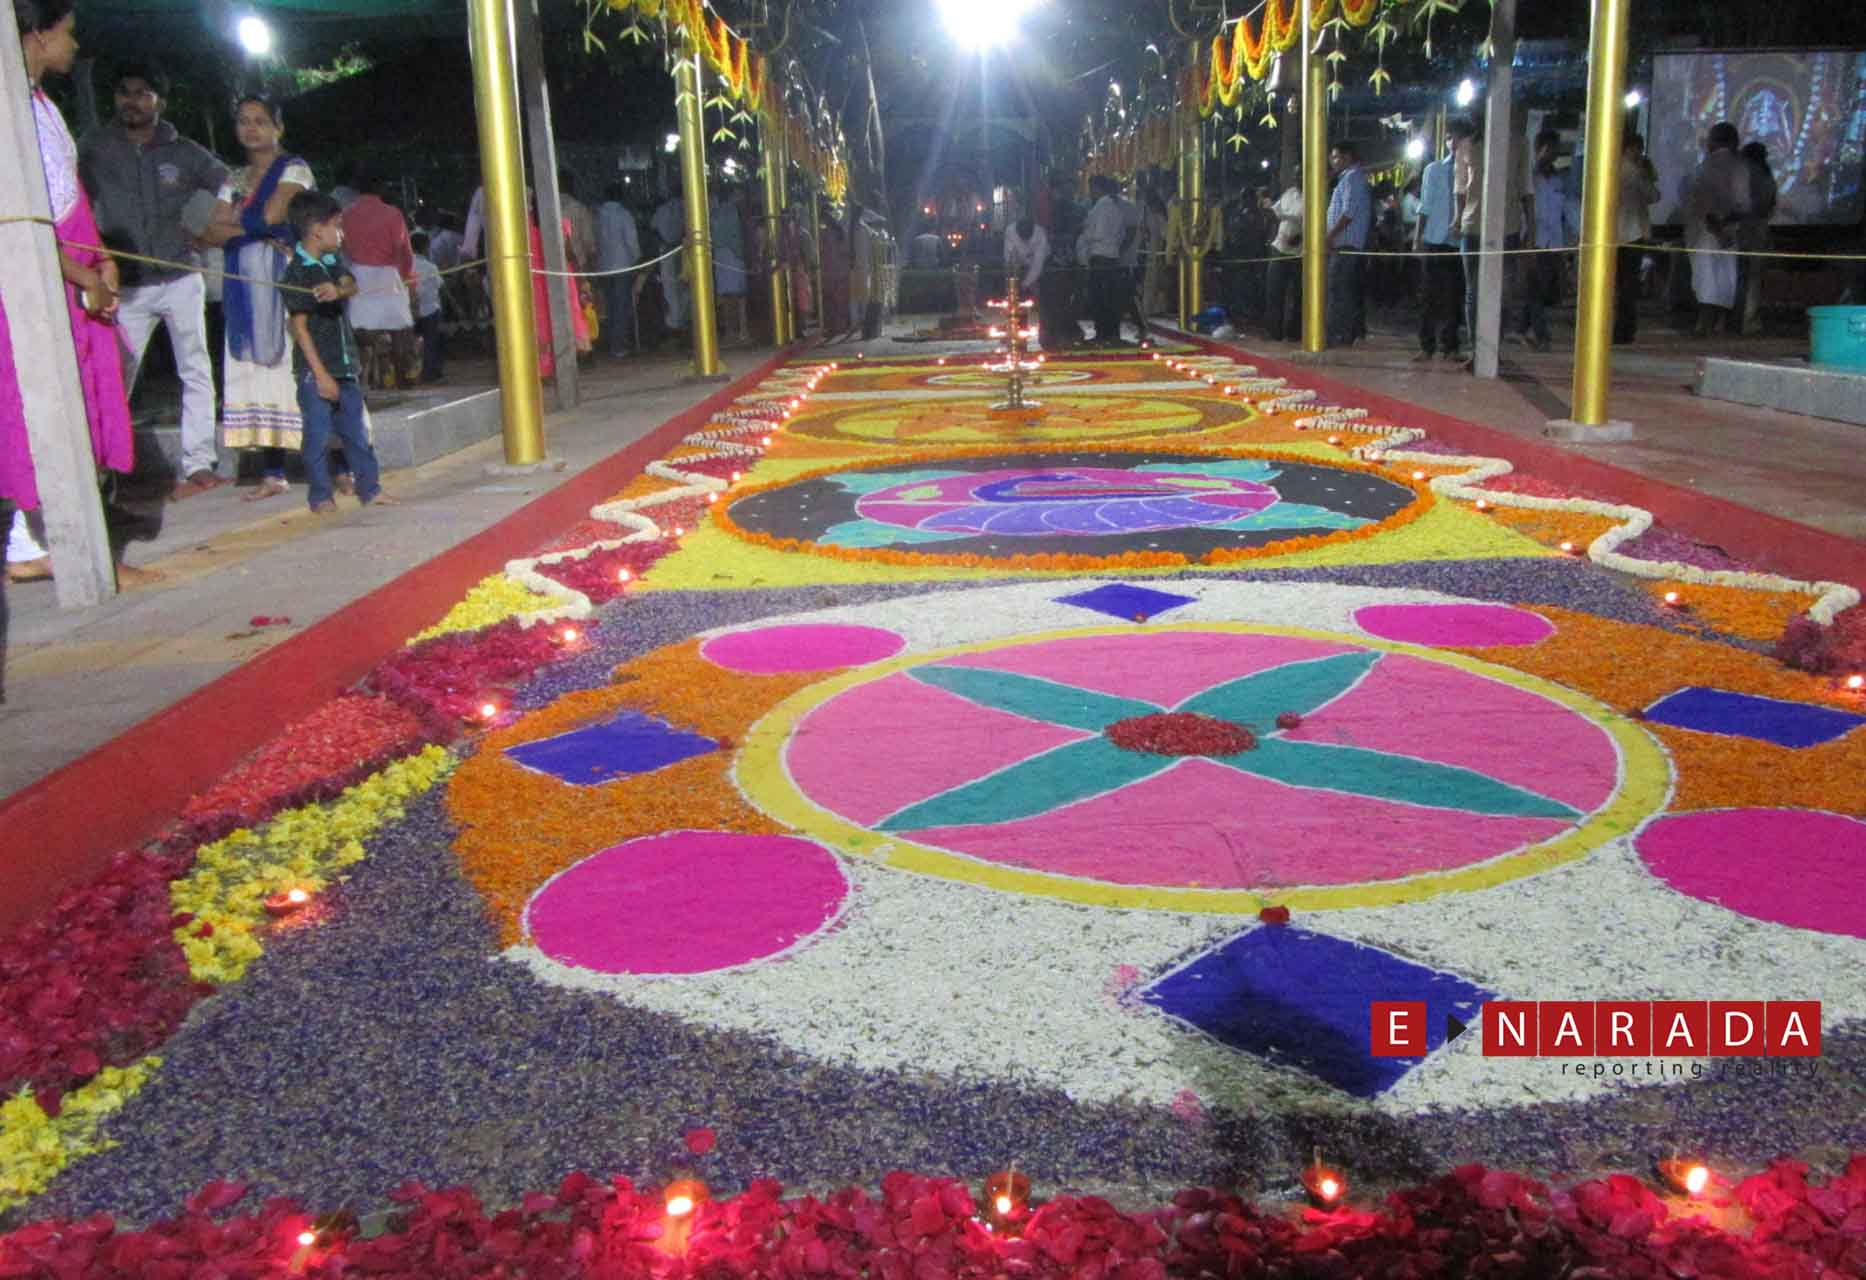 Designer rangolis are another major draw at Sowthadka temple.